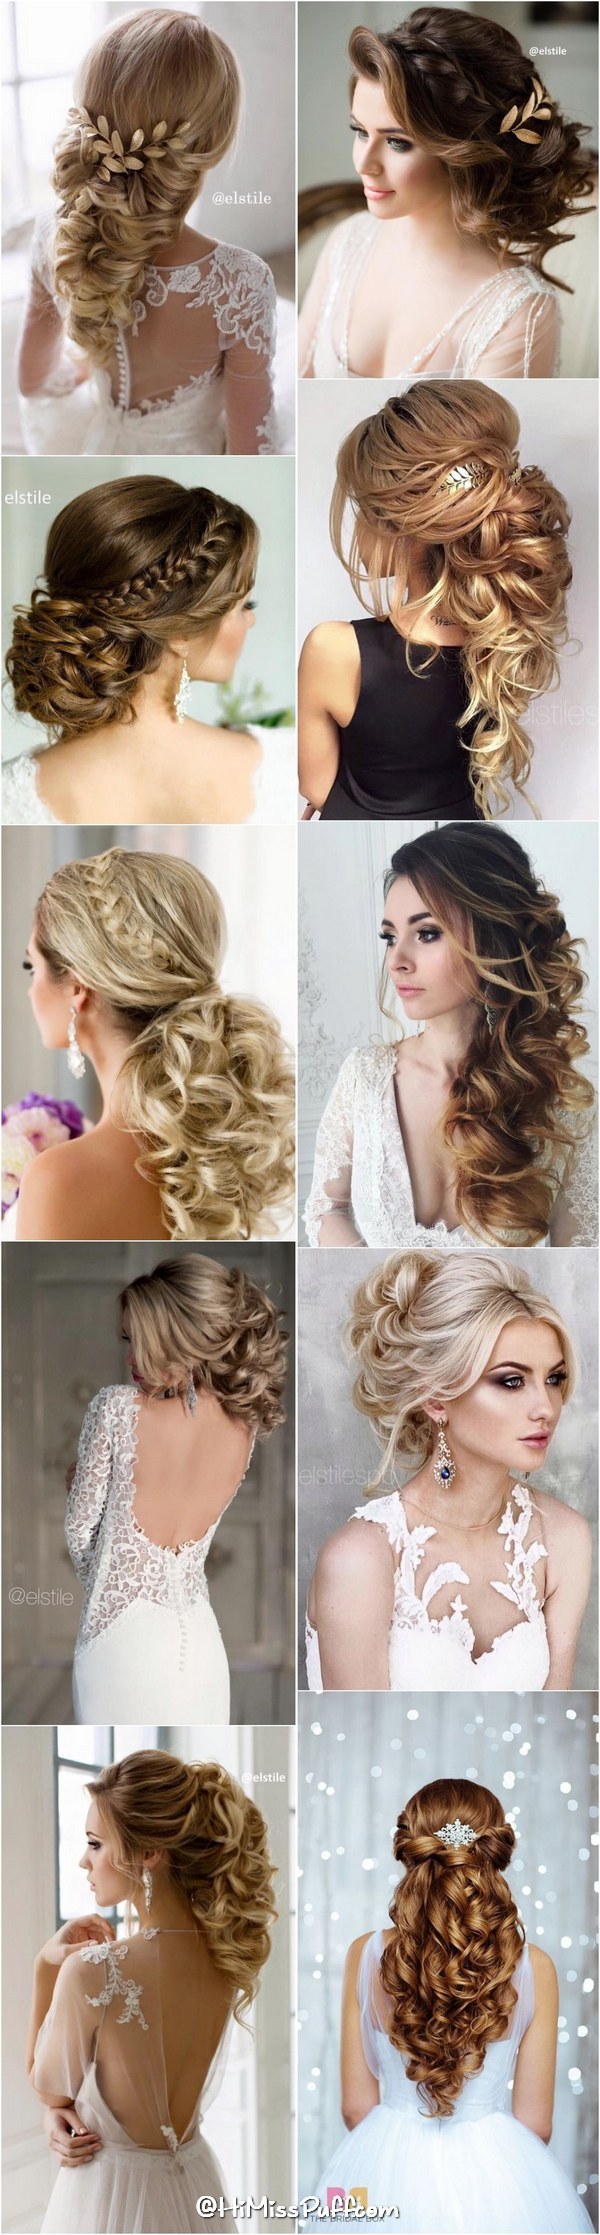 wedding_hairstyles-44